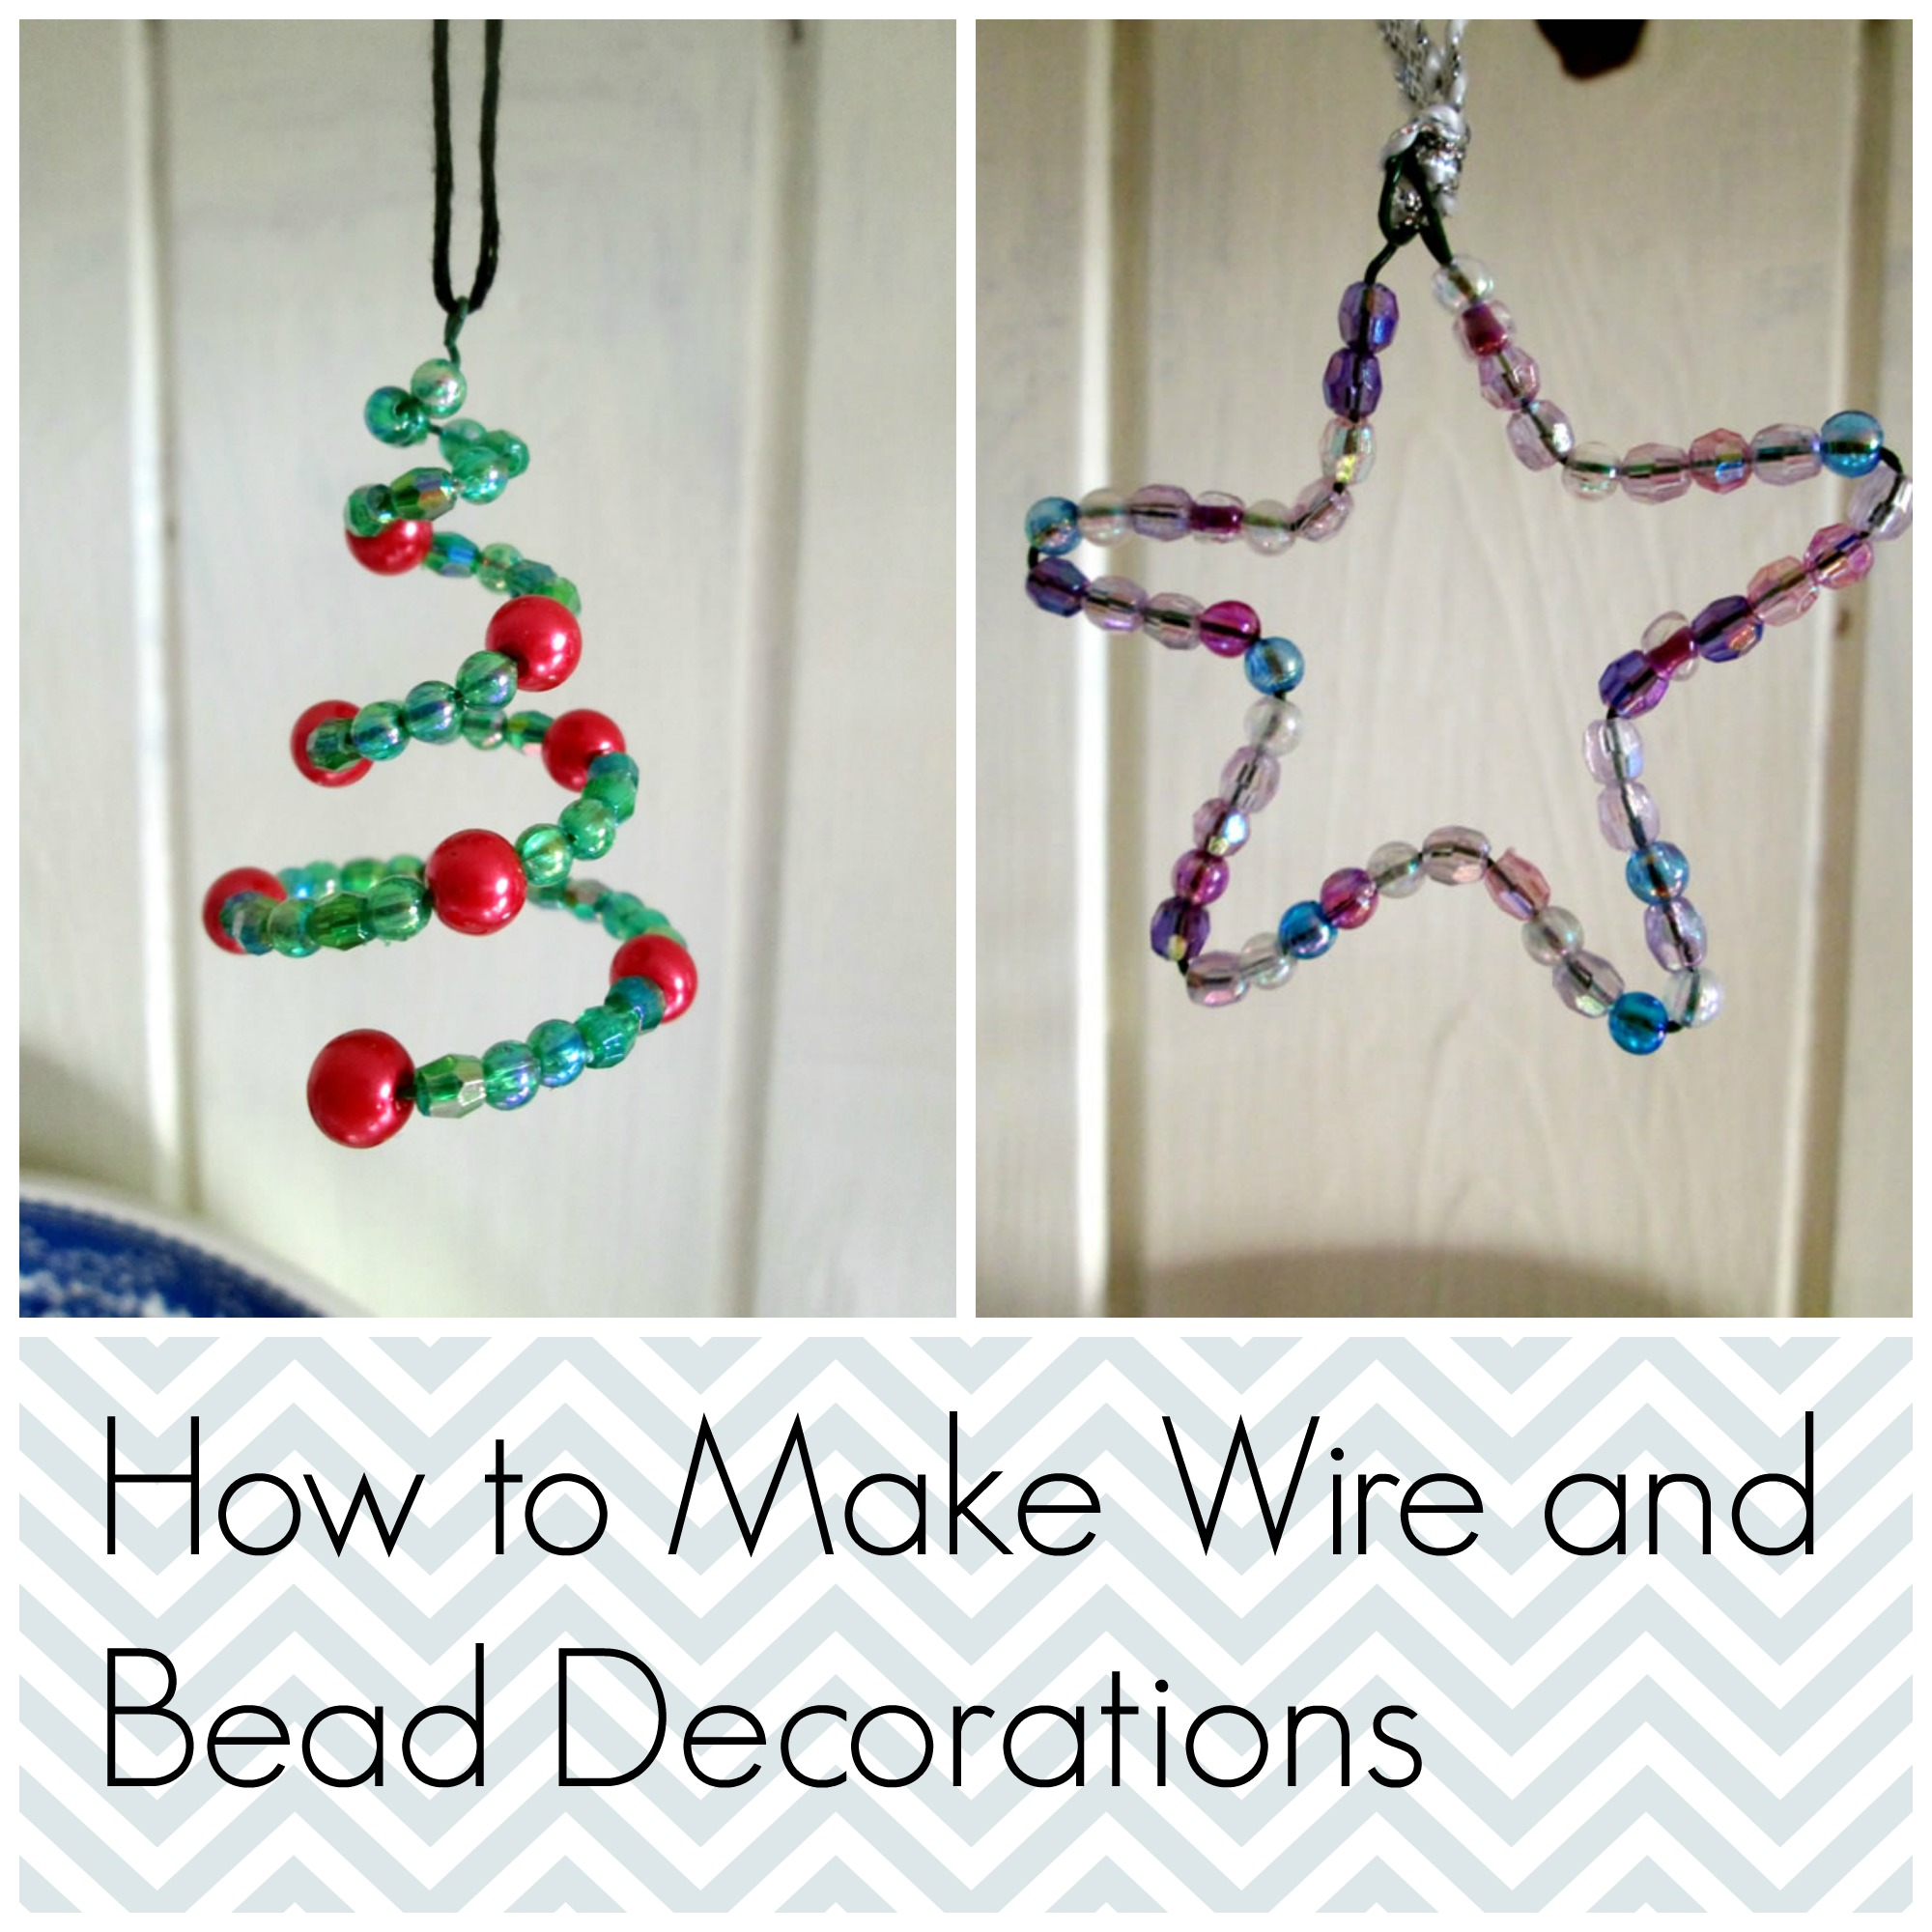 Wire and bead christmas decorations tea a sewing machine